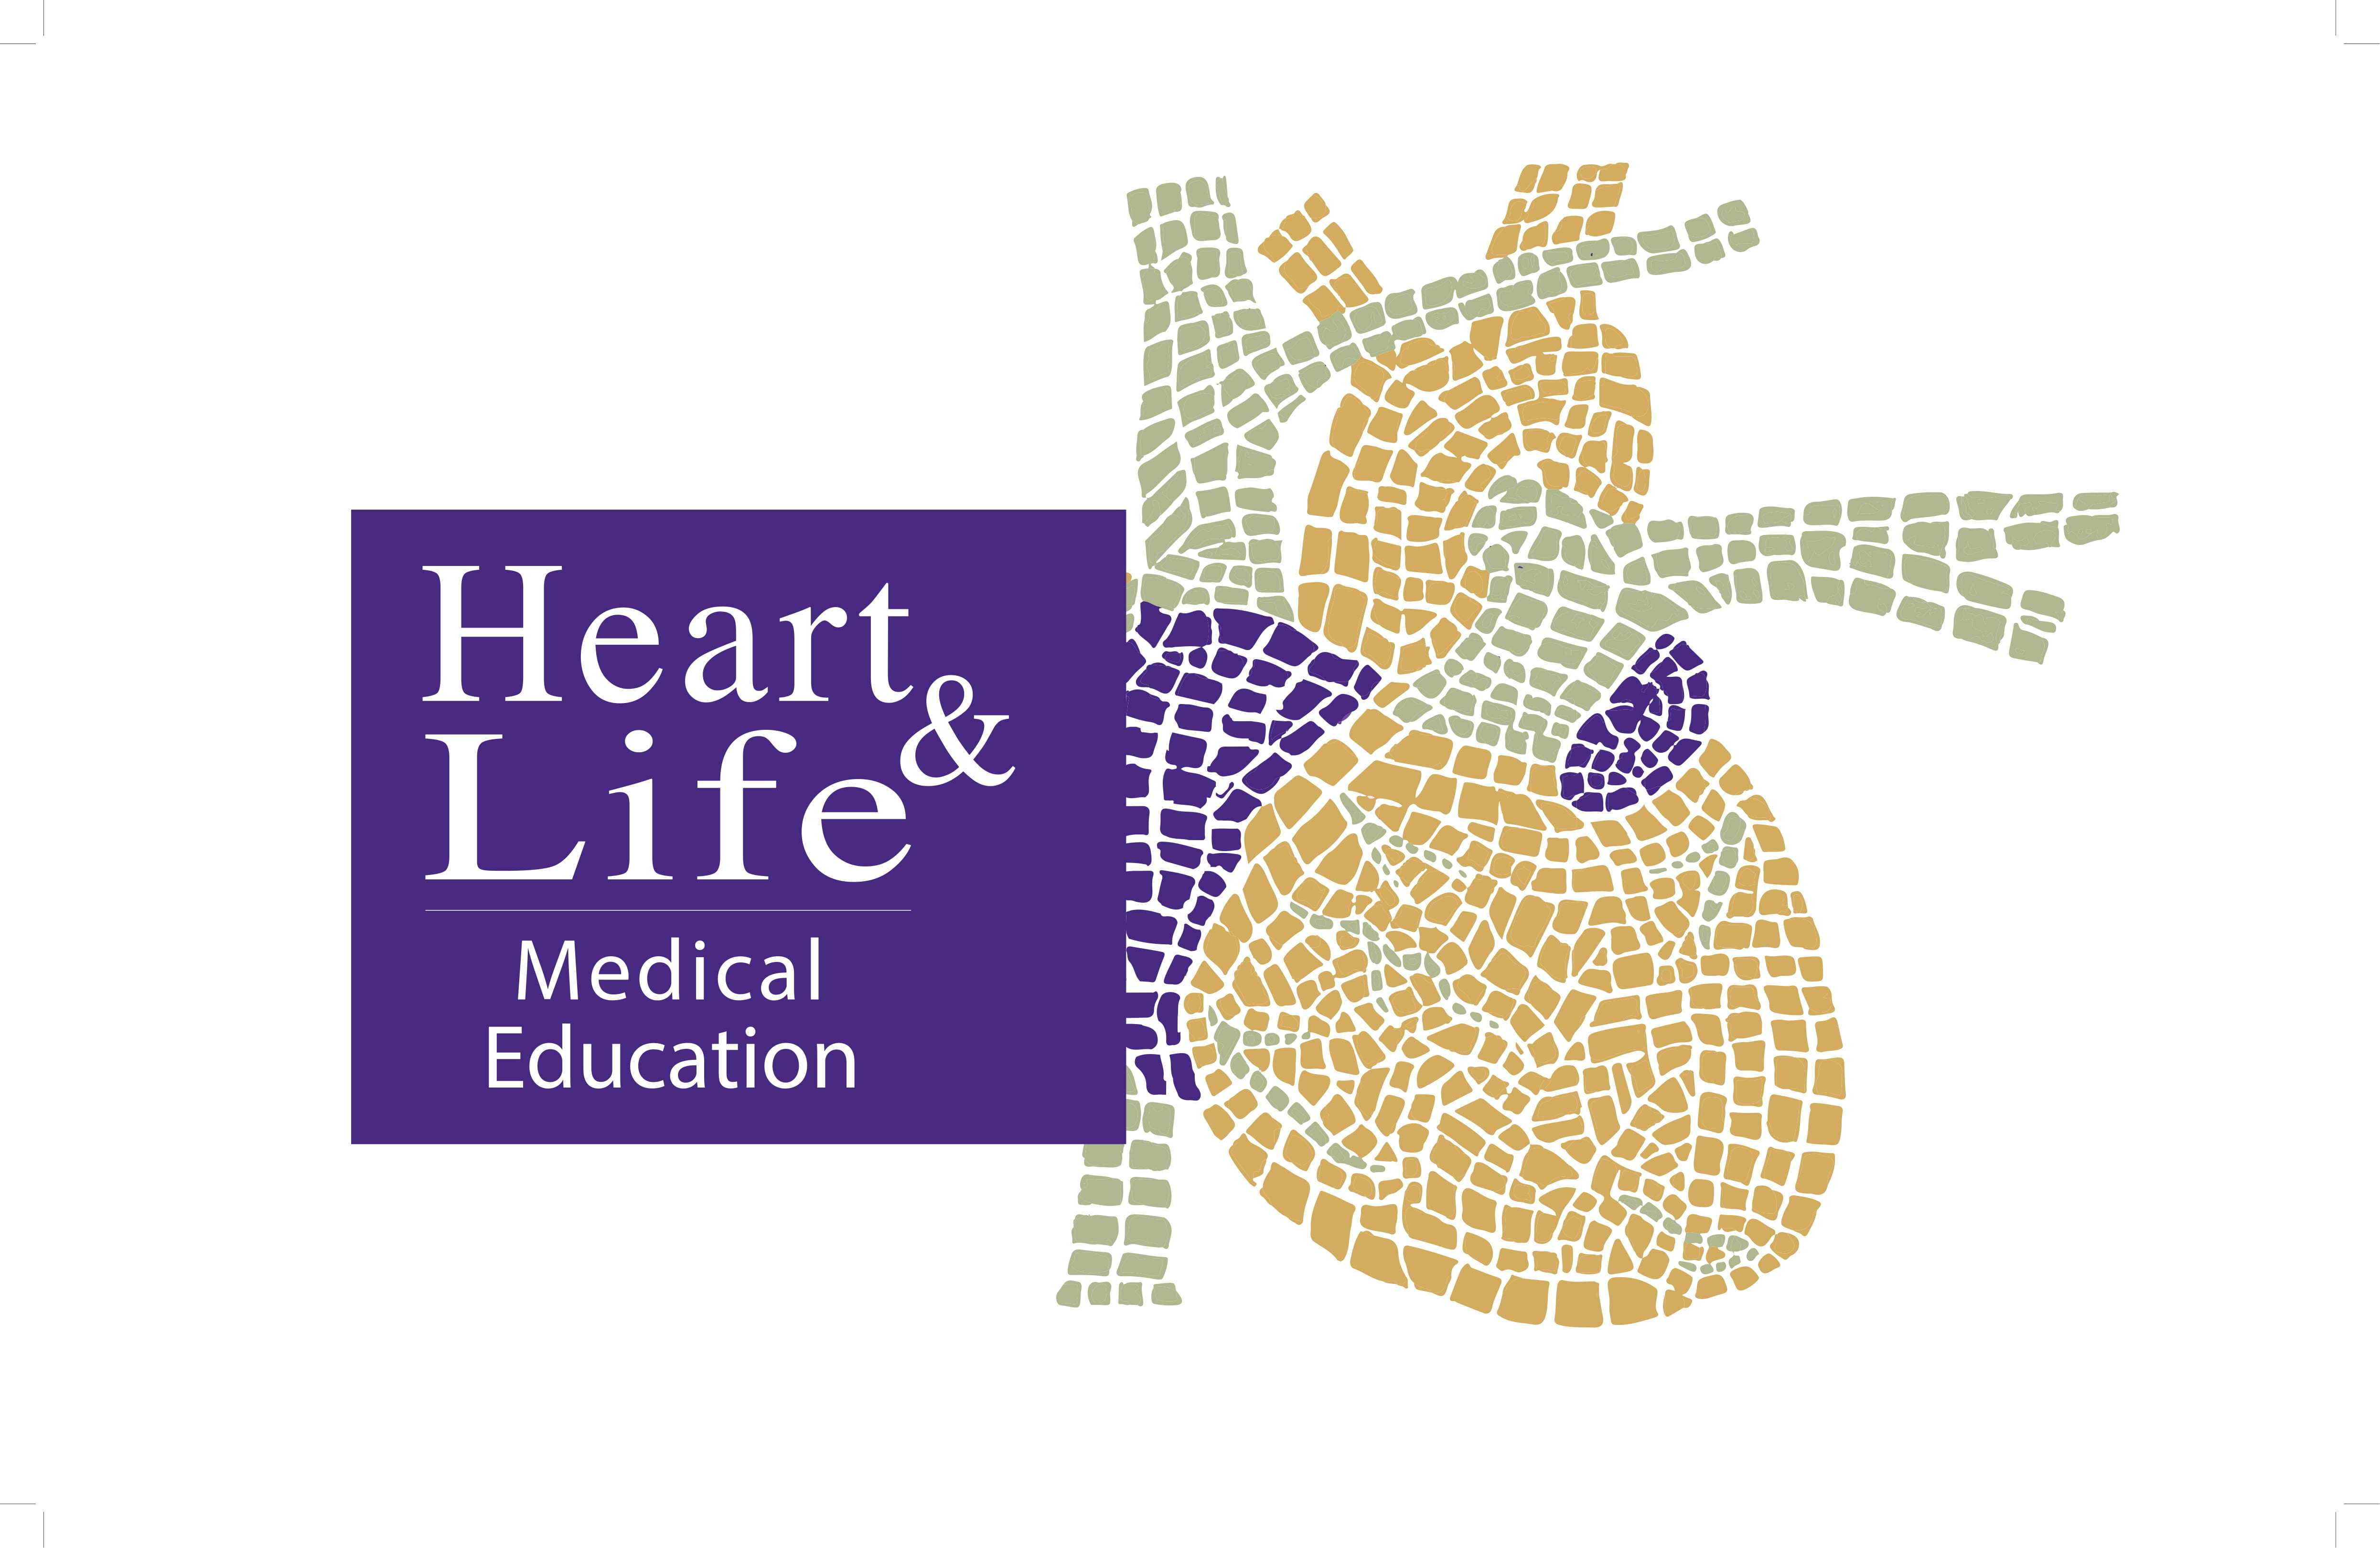 Heart and Life Medical Education